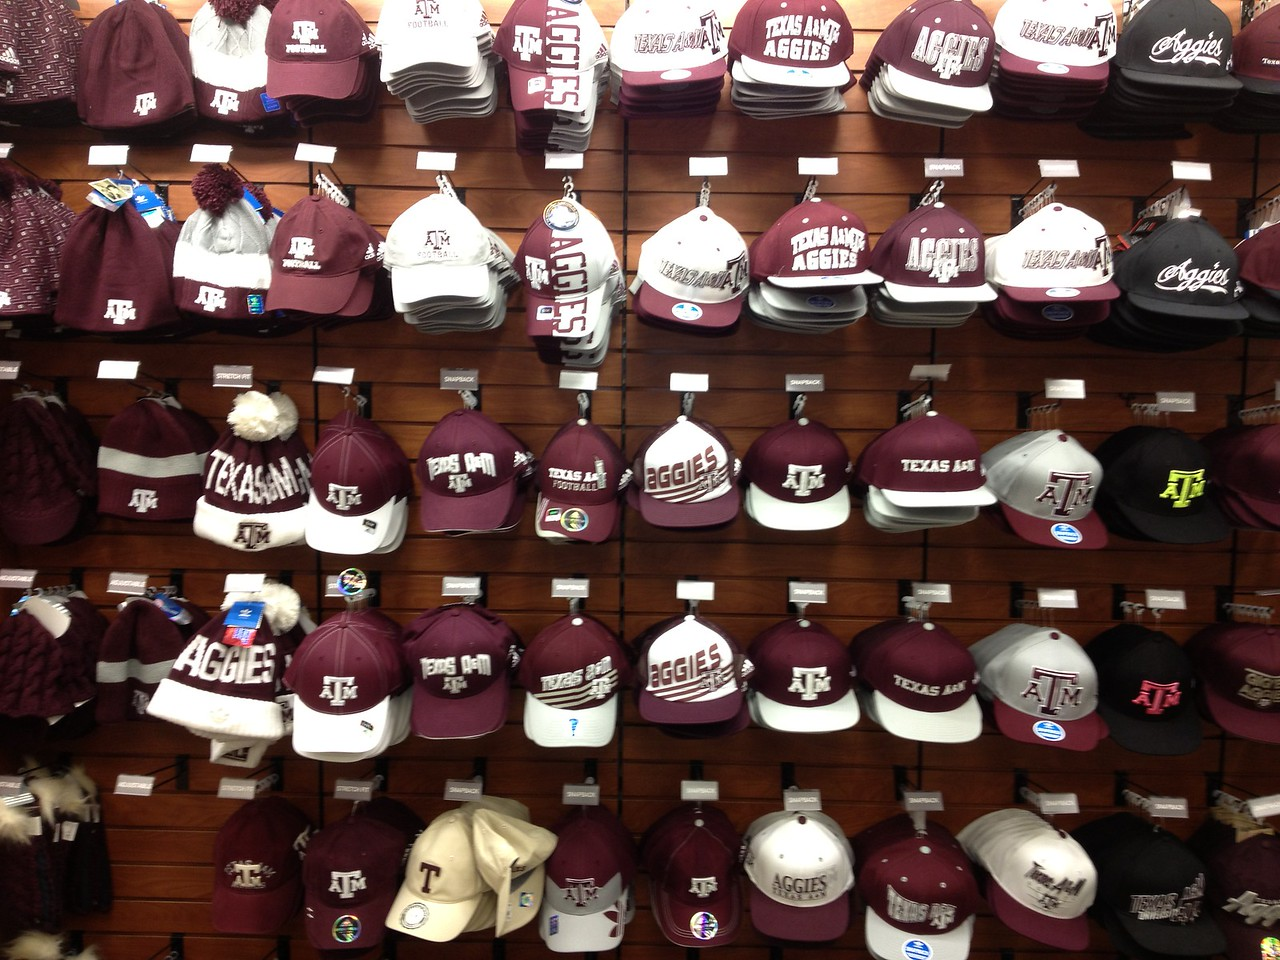 Aggie Hats Graphic 9-28-2012 8-36-42 AM 42